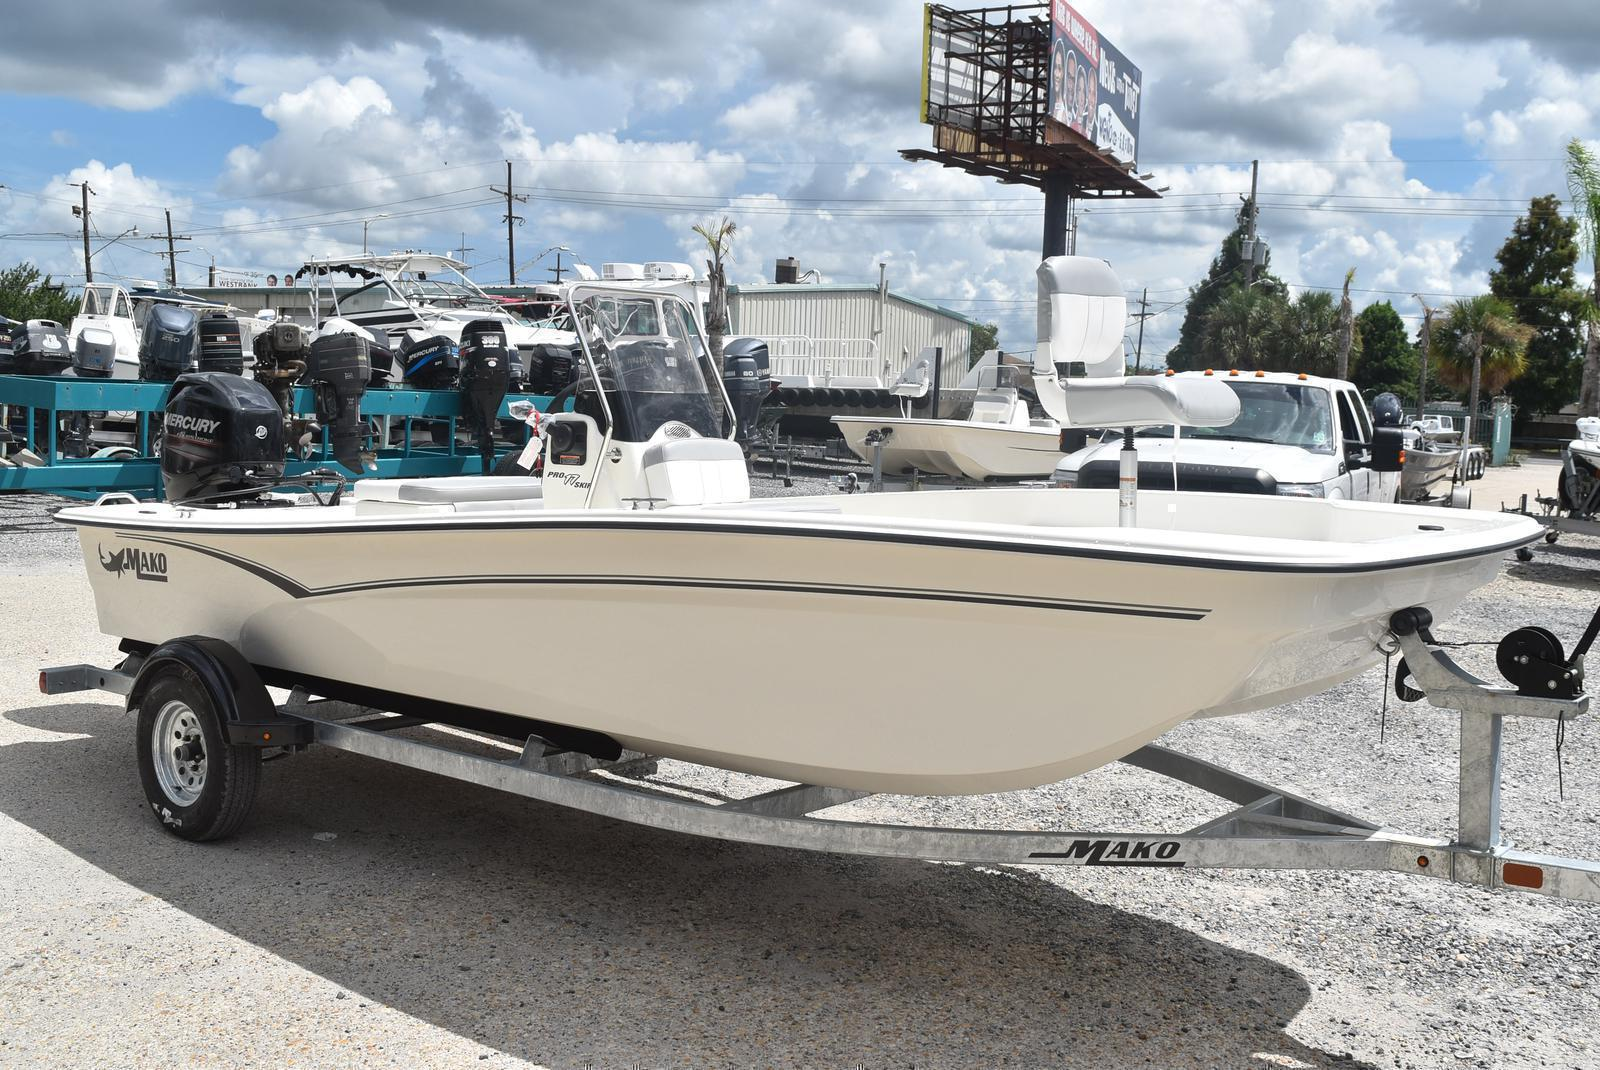 2020 Mako boat for sale, model of the boat is Pro Skiff 17, 75 ELPT & Image # 693 of 702